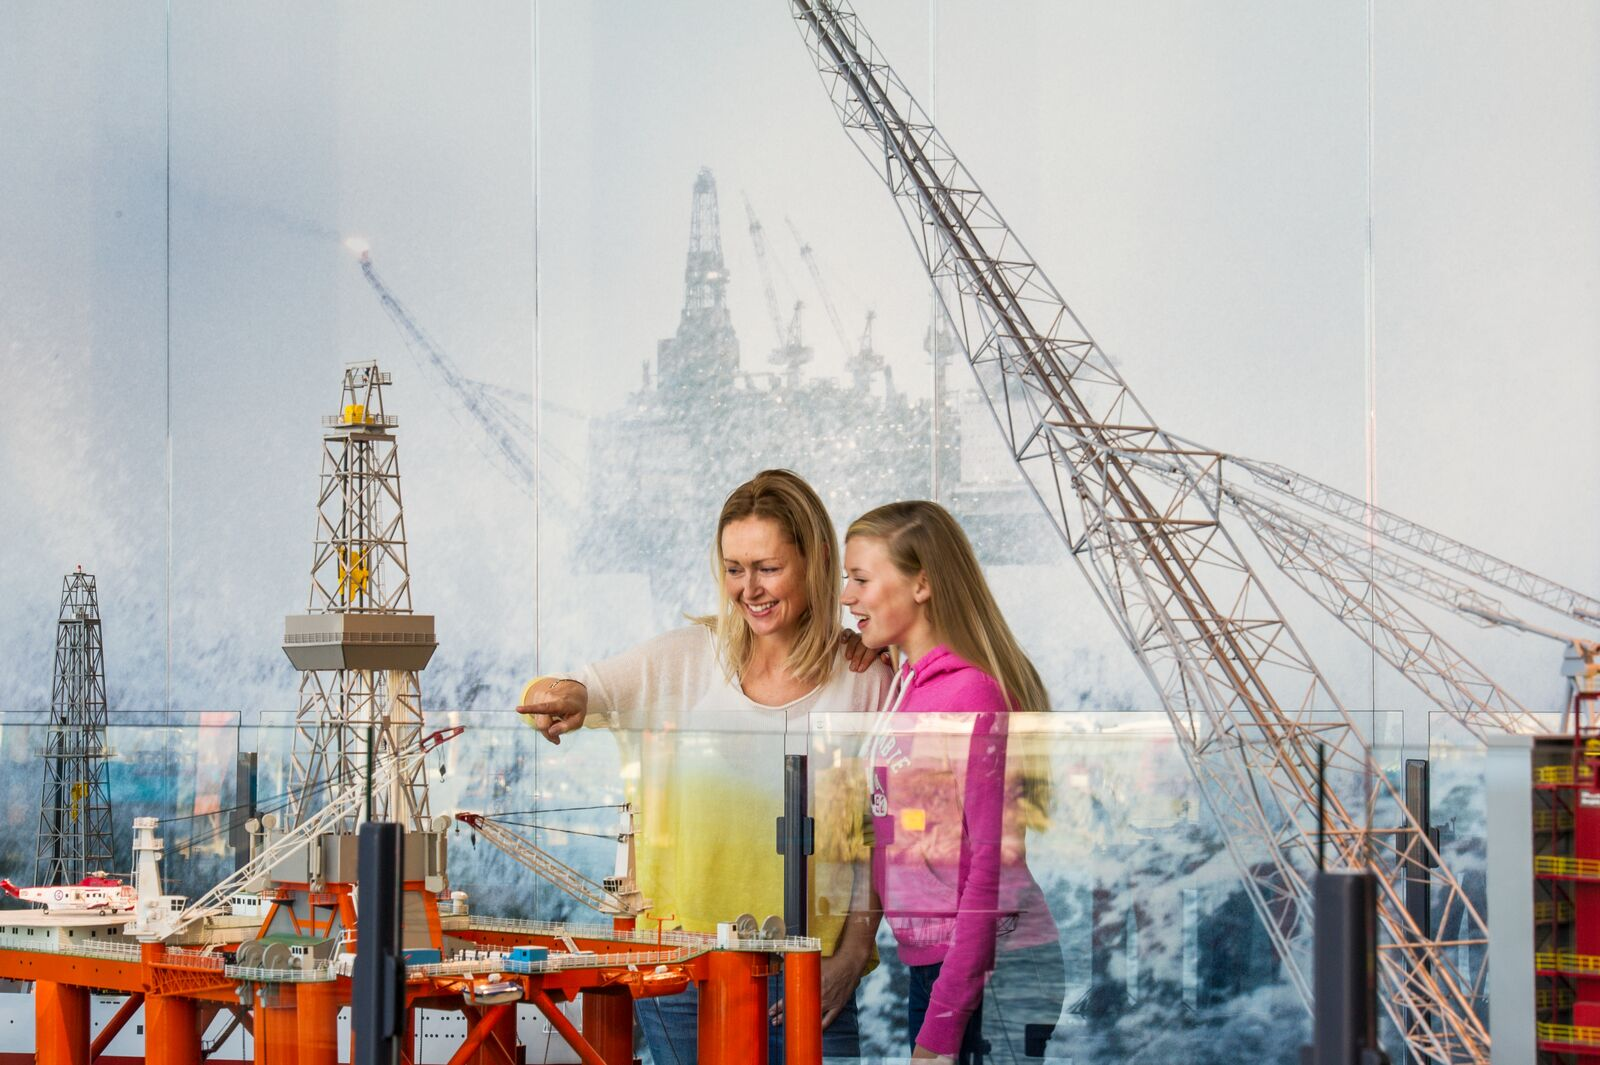 large-The Norwegian Petroleum Museum in Stavanger-CH - VisitNorway.com